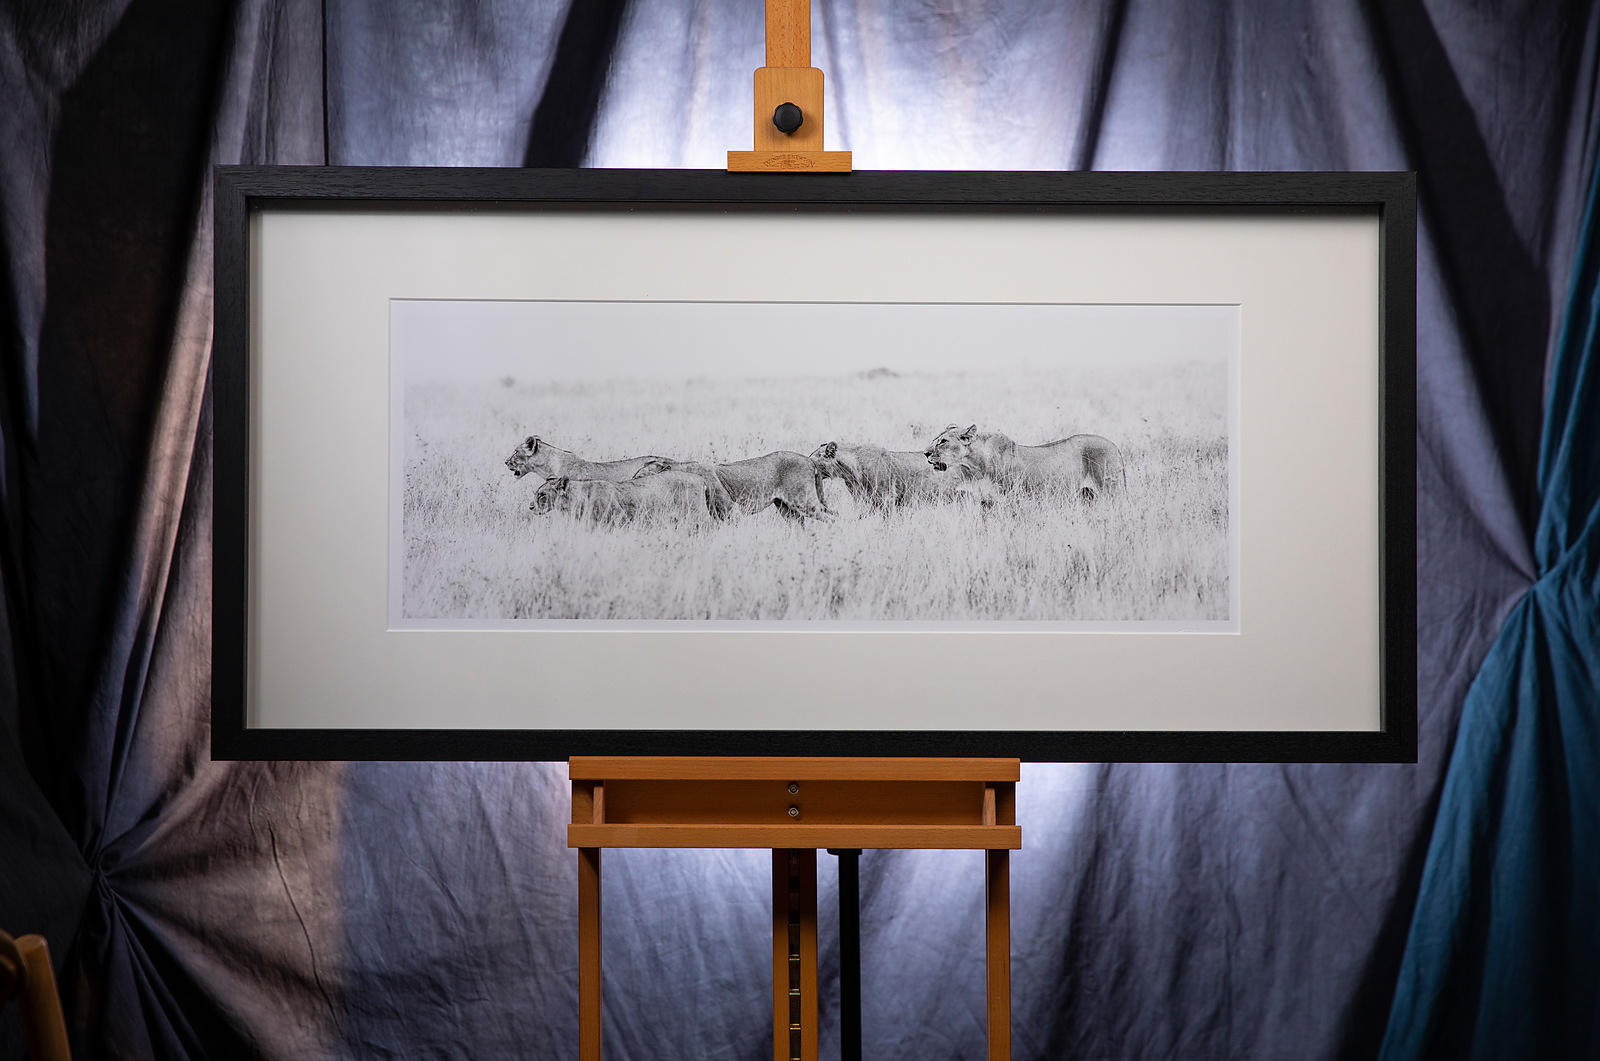 'The Pride'  No.1:  2019: Photographer: Neil Emmerson:  £975 including UK VAT